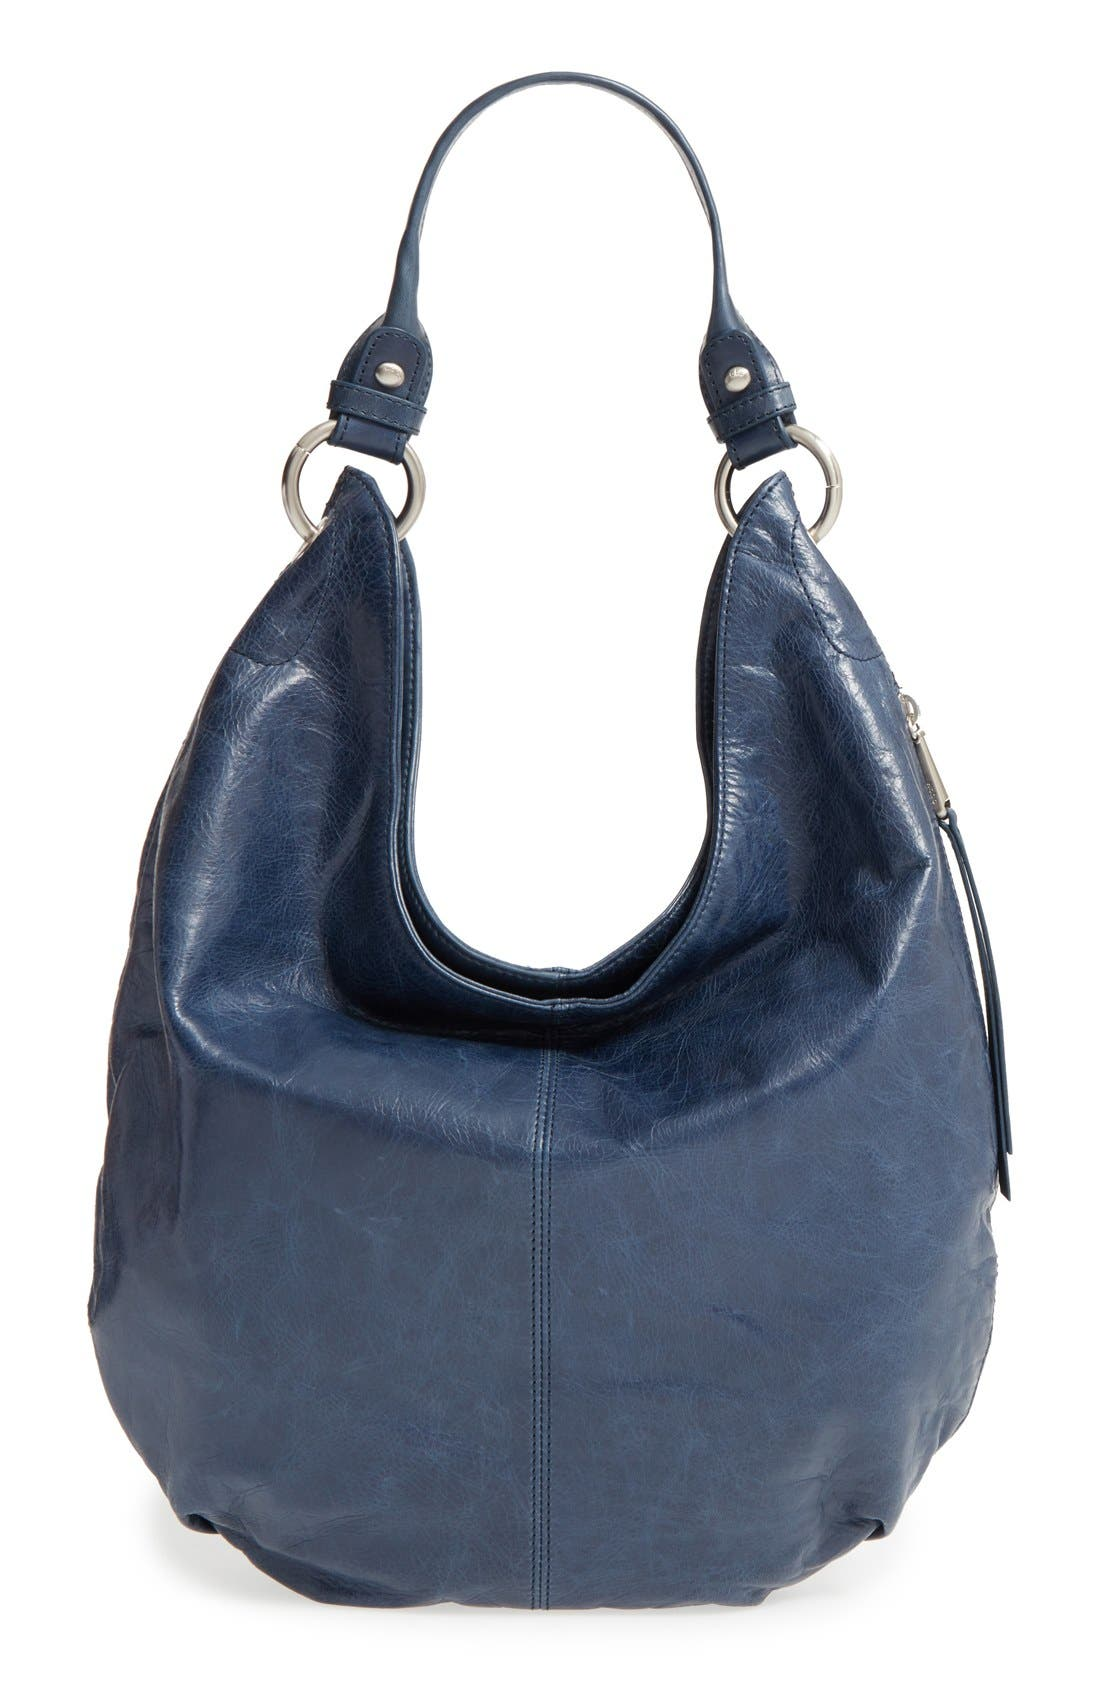 Hobo 'Gardner' Leather Shoulder Bag | Nordstrom